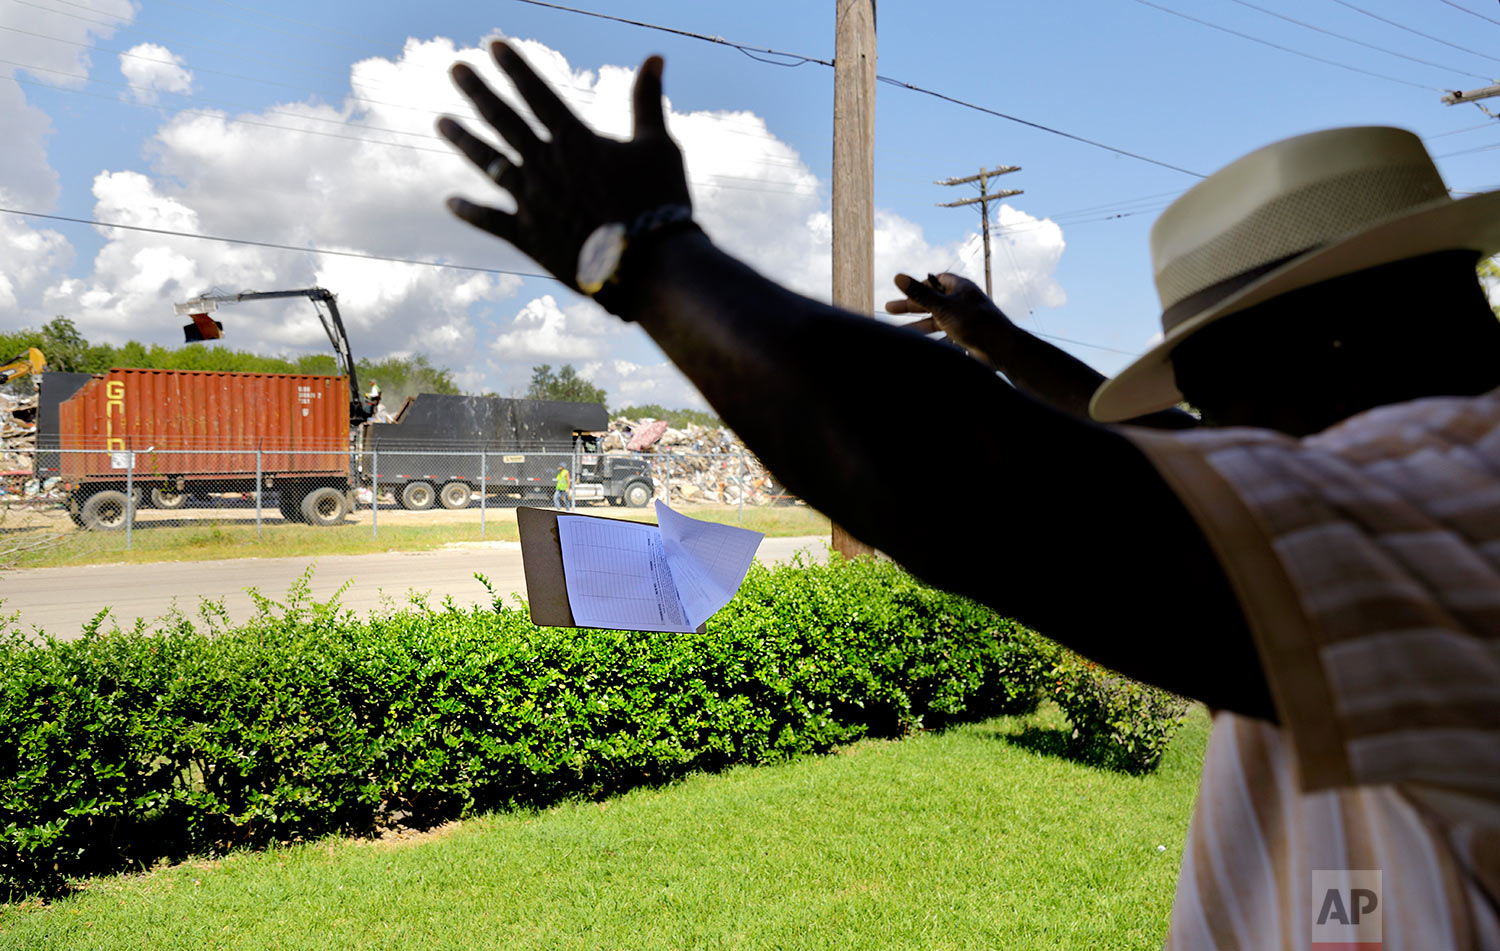 """Hilton Kelley tosses his petition clipboard in frustration as he's turned away from a renter who was told by her landlord not to get involved in Kelley's attempt to shutdown the dump across the street piled with flood damaged debris in Port Arthur, Texas, Wednesday, Sept. 27, 2017. """"This is an outrage. This is appalling. There's no way this should have happened,"""" said Kelly of the dump's proximity to people's homes. He worried about mold and other contaminants from the garbage getting into the low-income African American neighborhood. These are the neighborhoods, he said, that often pay the price for environmental pollution. Many of these neighborhoods also flooded. (AP Photo/David Goldman)"""